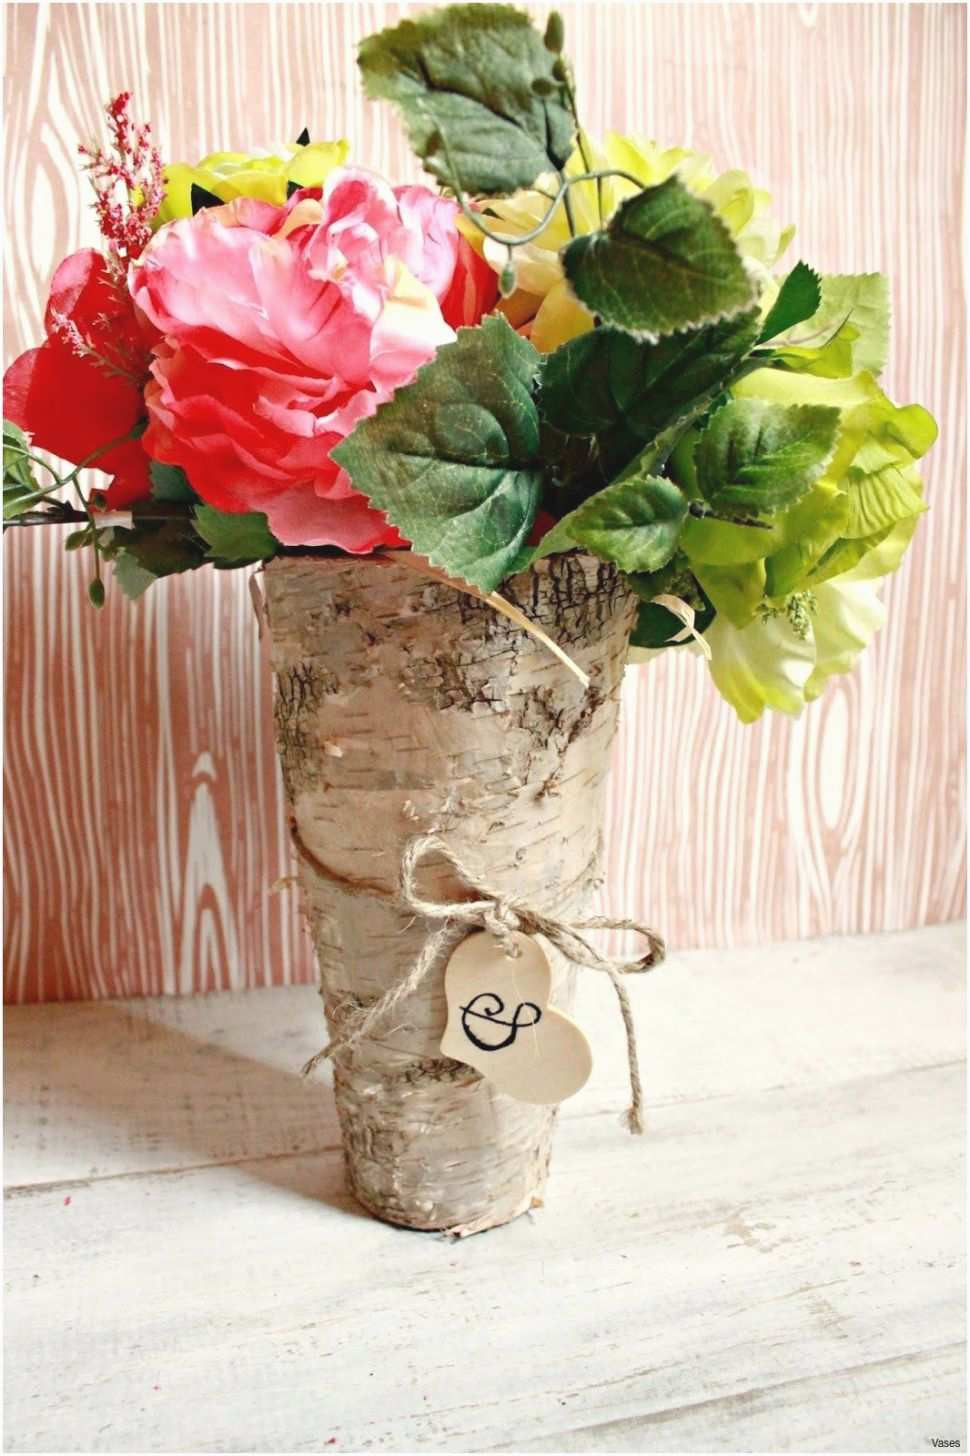 happy everything vase of fresh nice wedding gifts wedding bands with regard to unique wedding gifts for friends remarkable wooden wedding flowers h vases diy wood vase i 0d